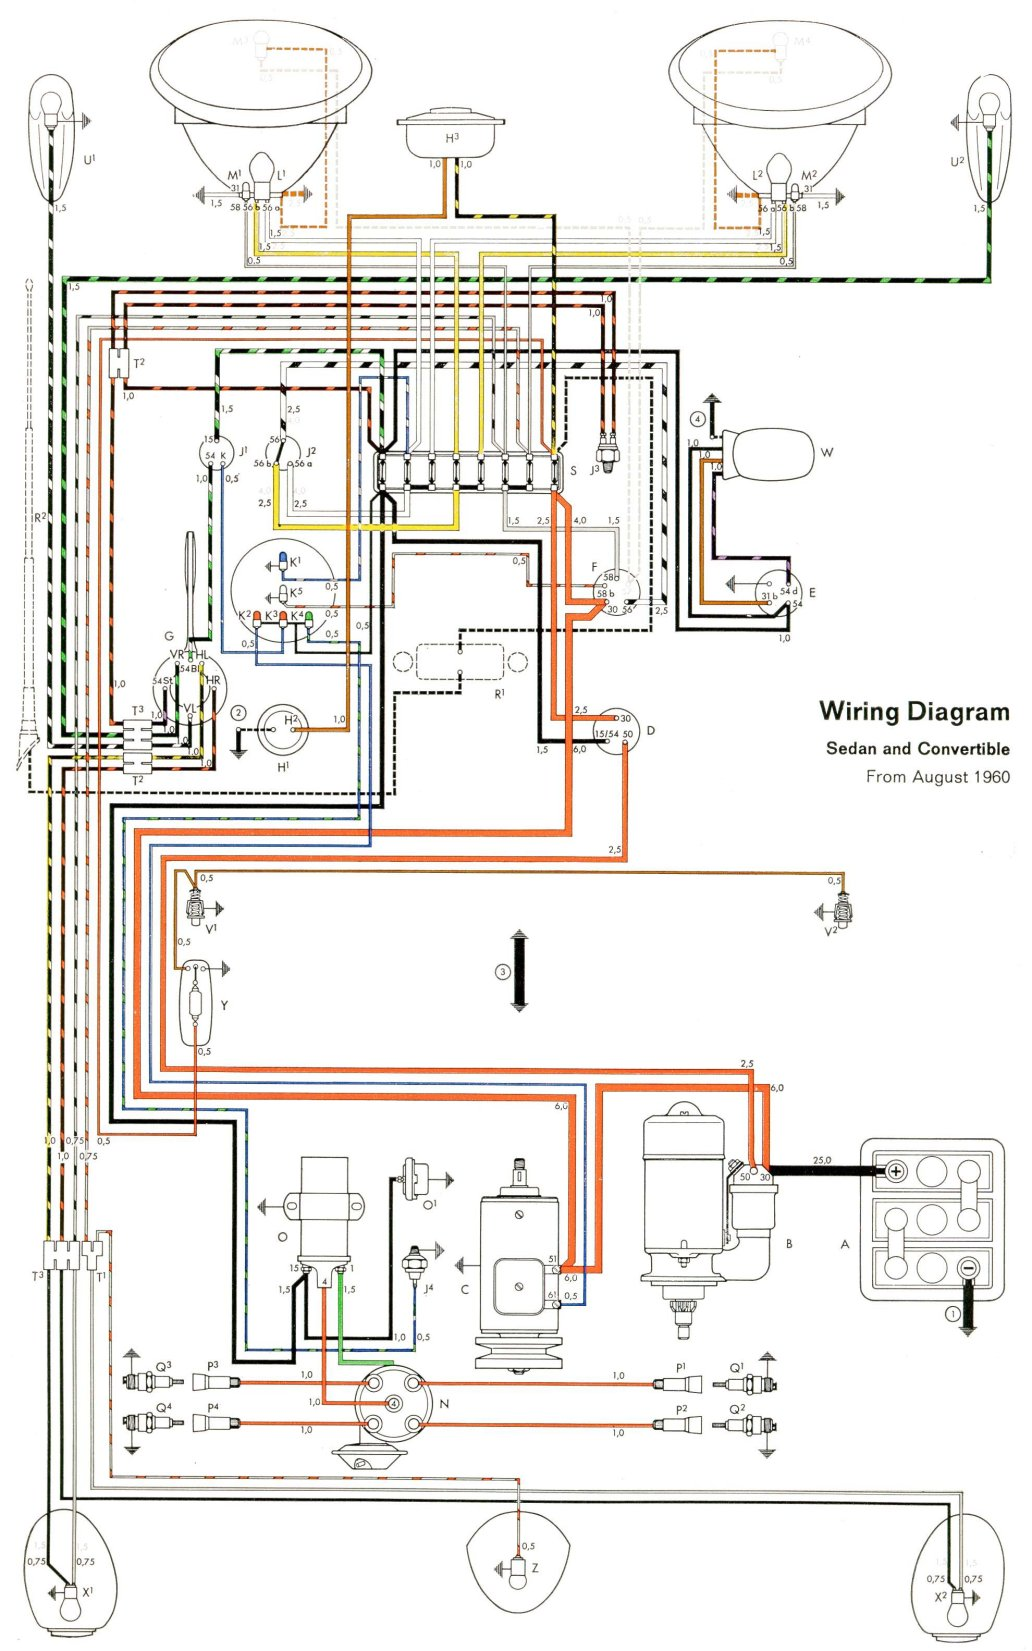 bug_61 thesamba com type 1 wiring diagrams vw ignition wiring diagram at n-0.co